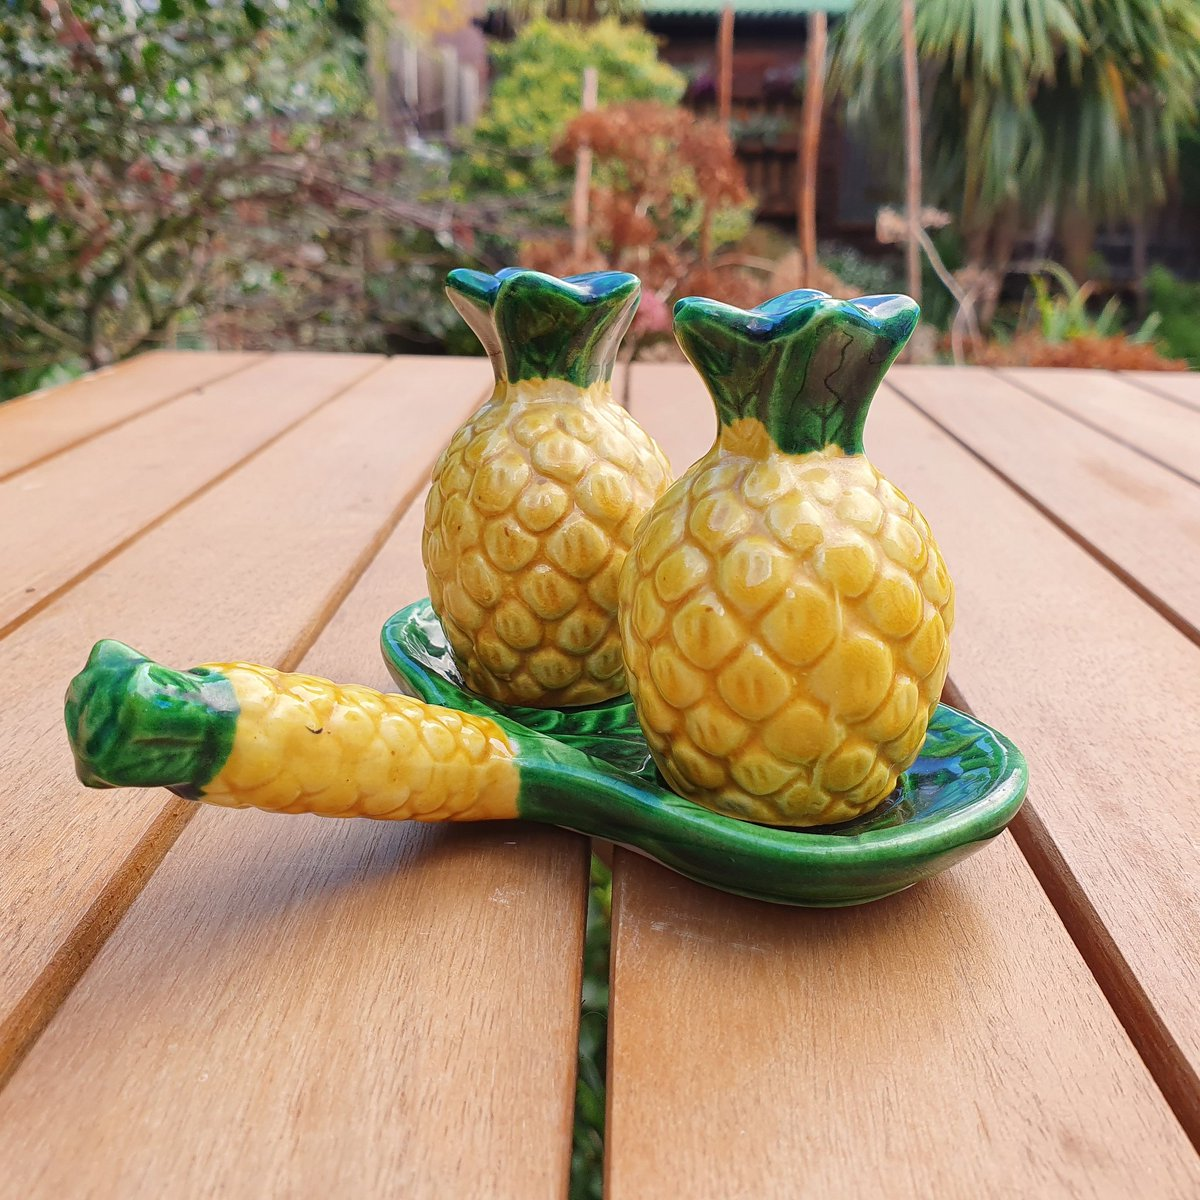 Kitsch salt and pepper set in the shape of pineapples, sitting on a tray with a pineapple handle. £18.50 from #etsy wowiezowieshop #vintagestyle #vintage #japan #saltpepper #pineapple #vintageseller #kitsch #retro #etsyfinds #etsyseller #ceramic #pineapples https://t.co/EkWclEm6XE